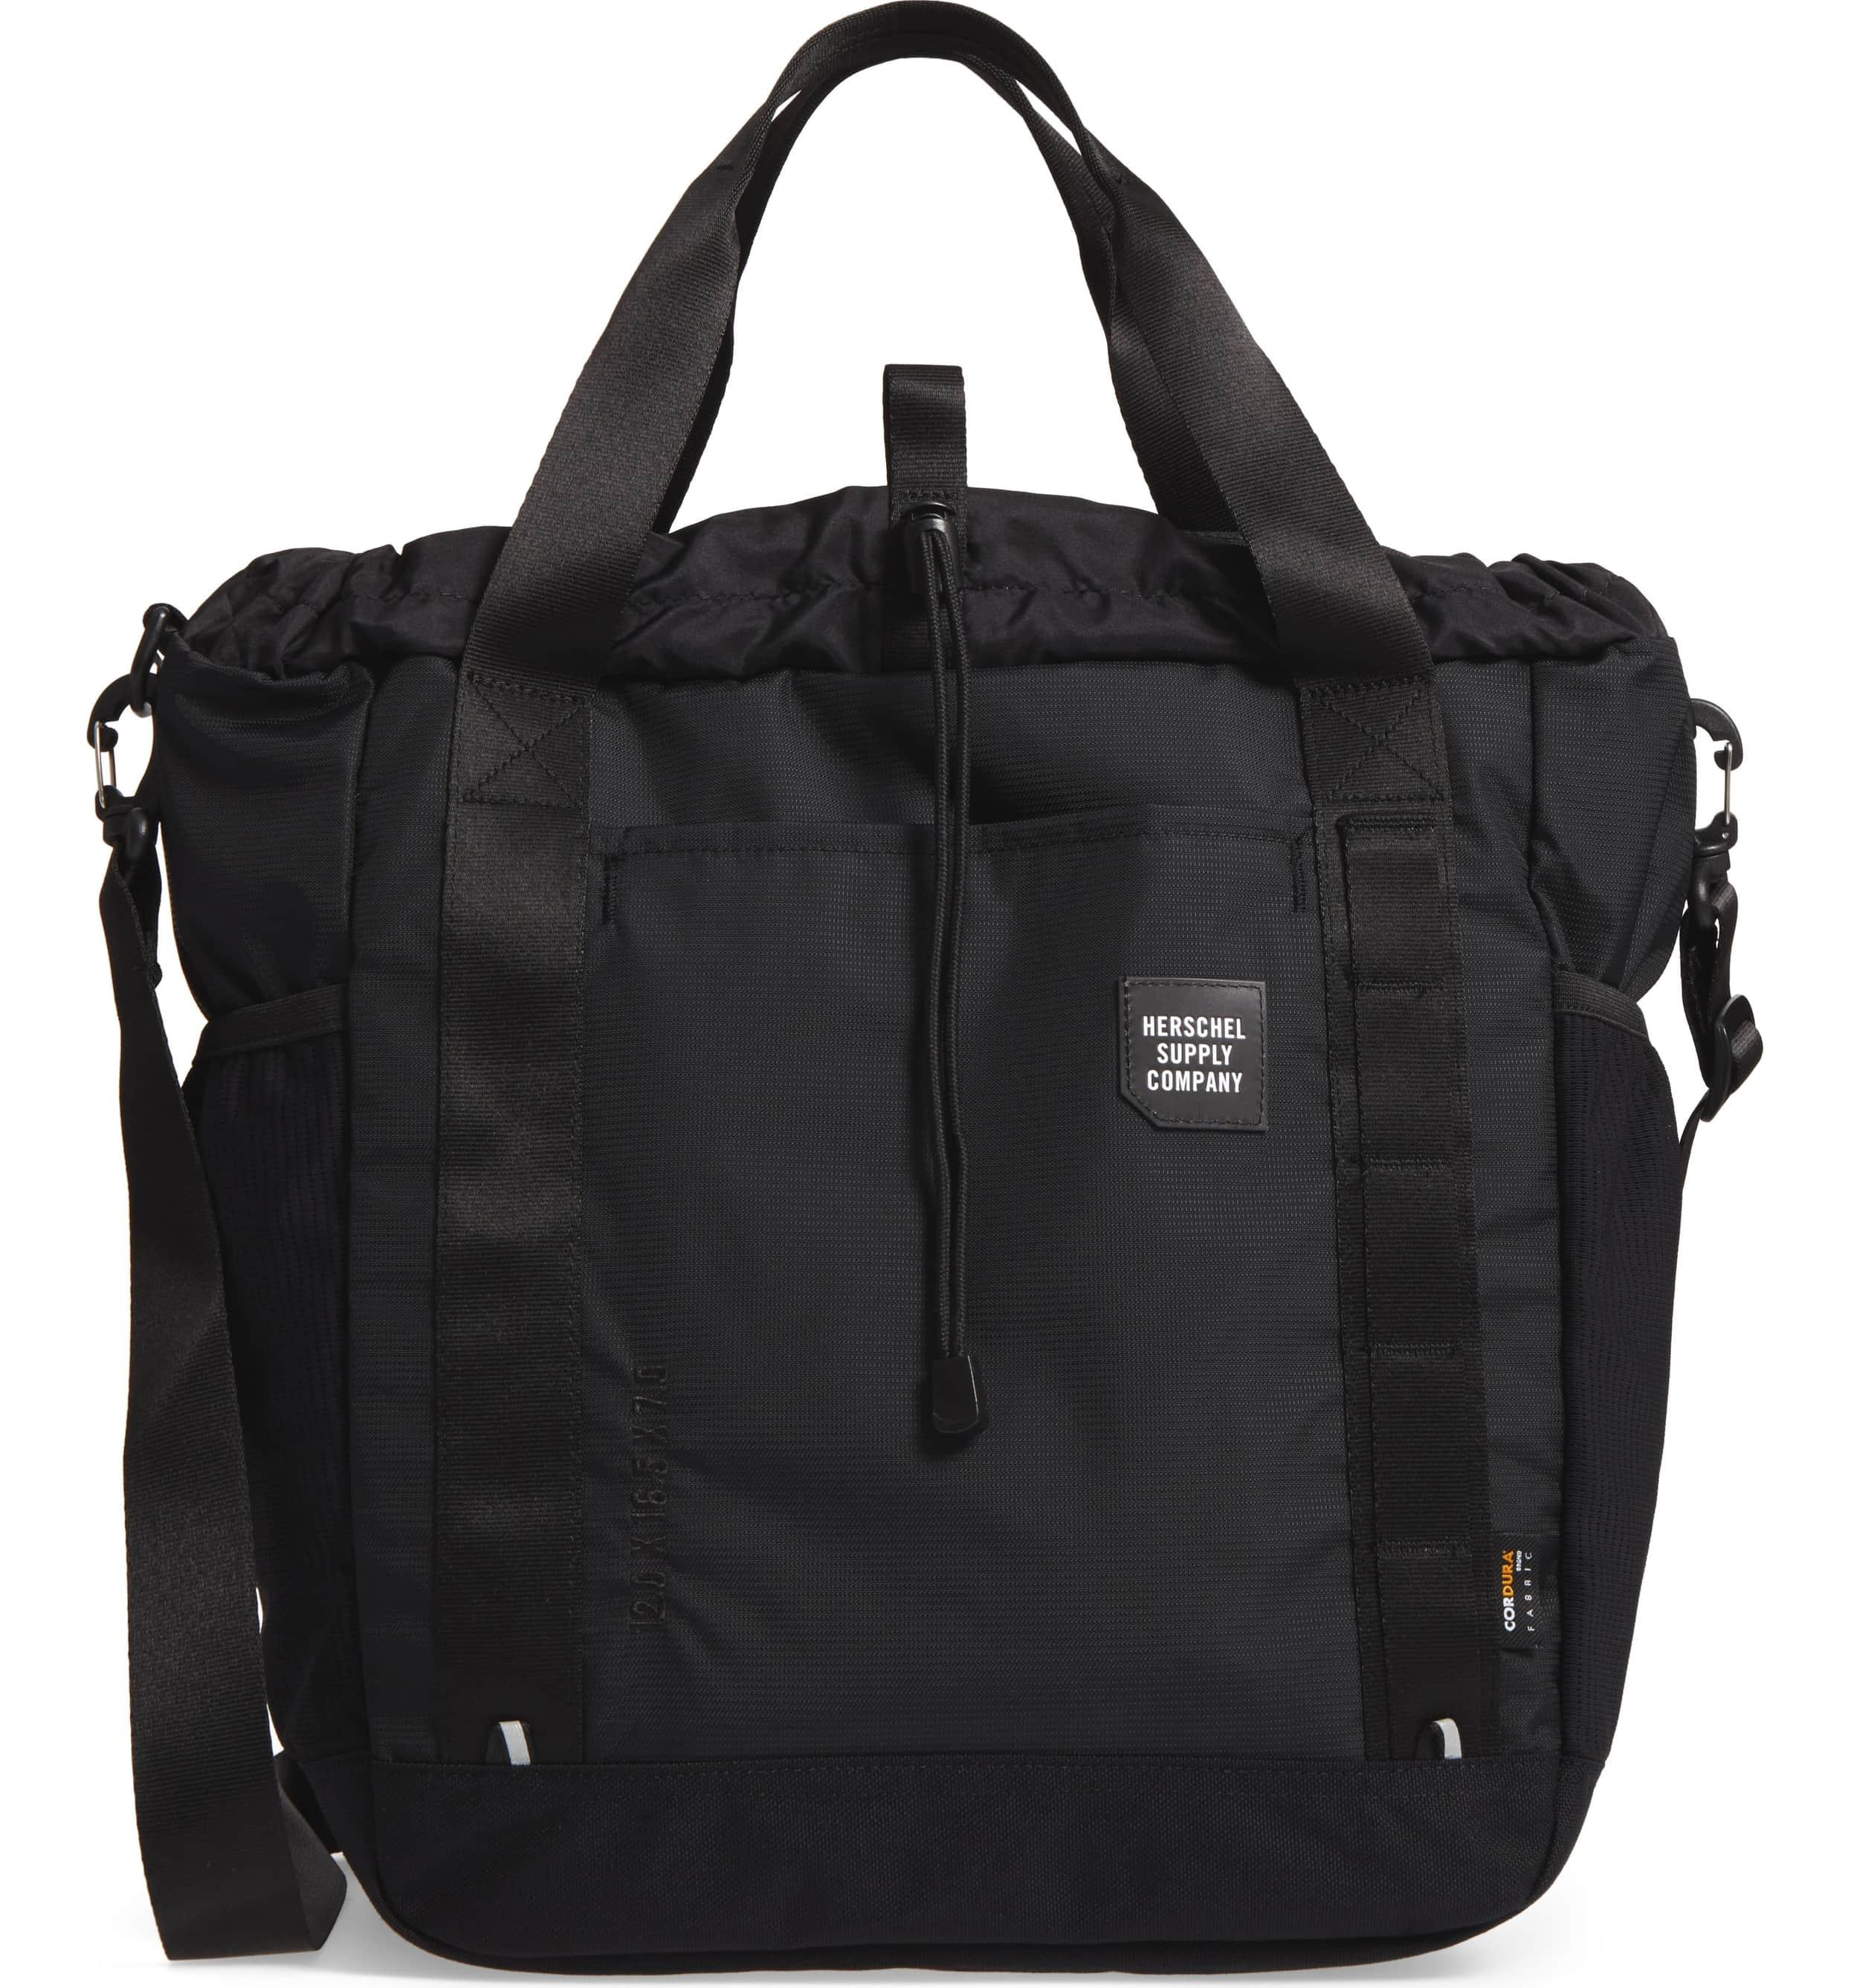 [Herschel Supply Co.] Barnes 2 WAY 30L Tote Bag - Trail - Waterproof Durable Business Laptop Bag